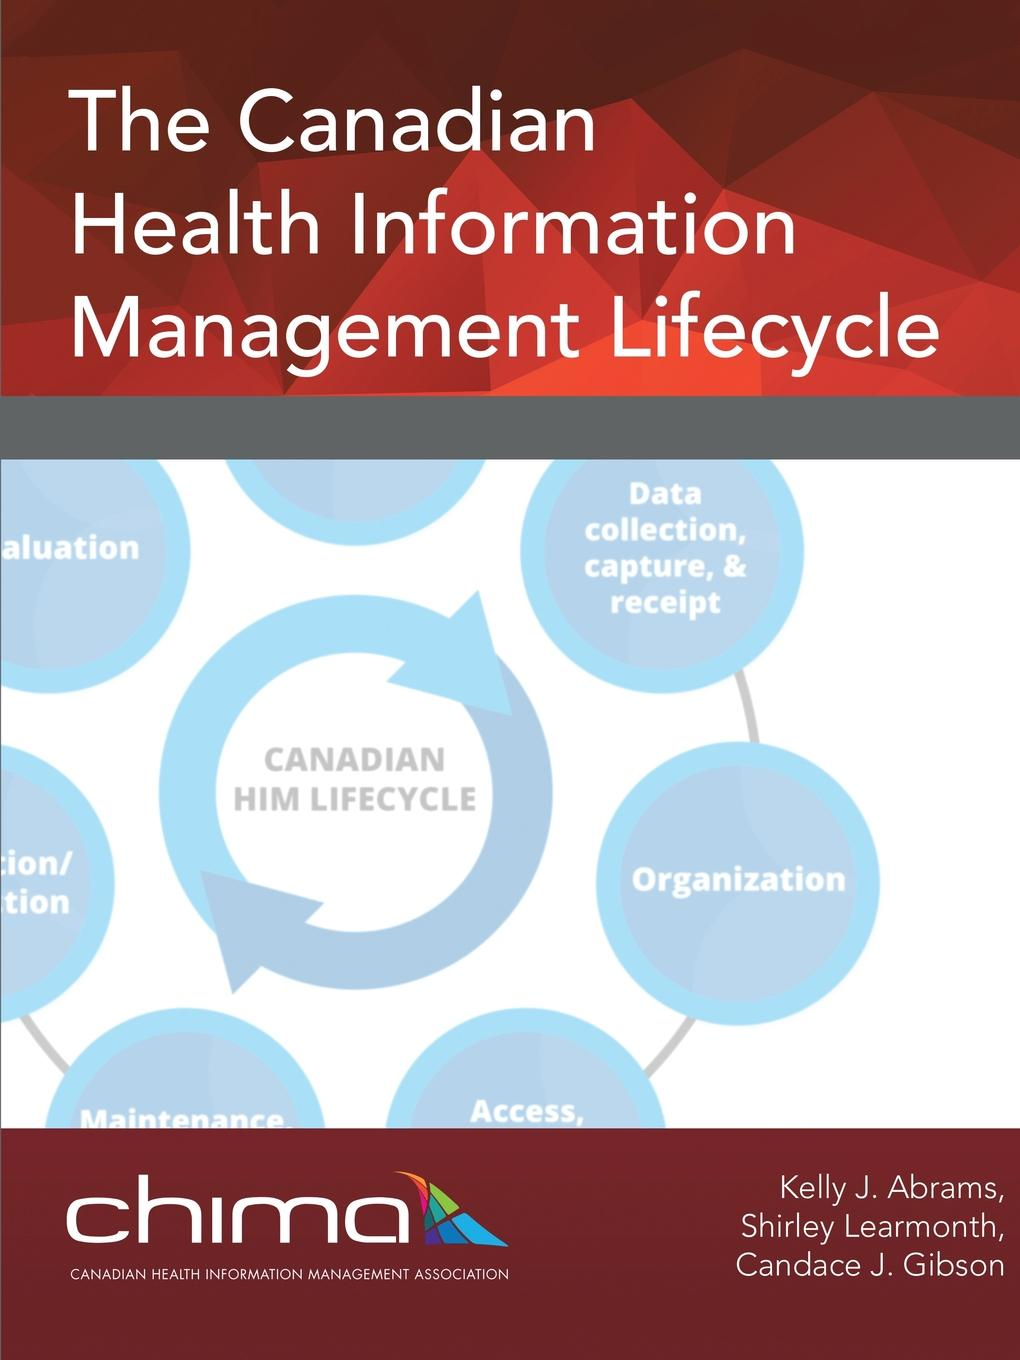 CHIMA The Canadian Health Information Management Lifecycle collaboration among data sources for information retrieval